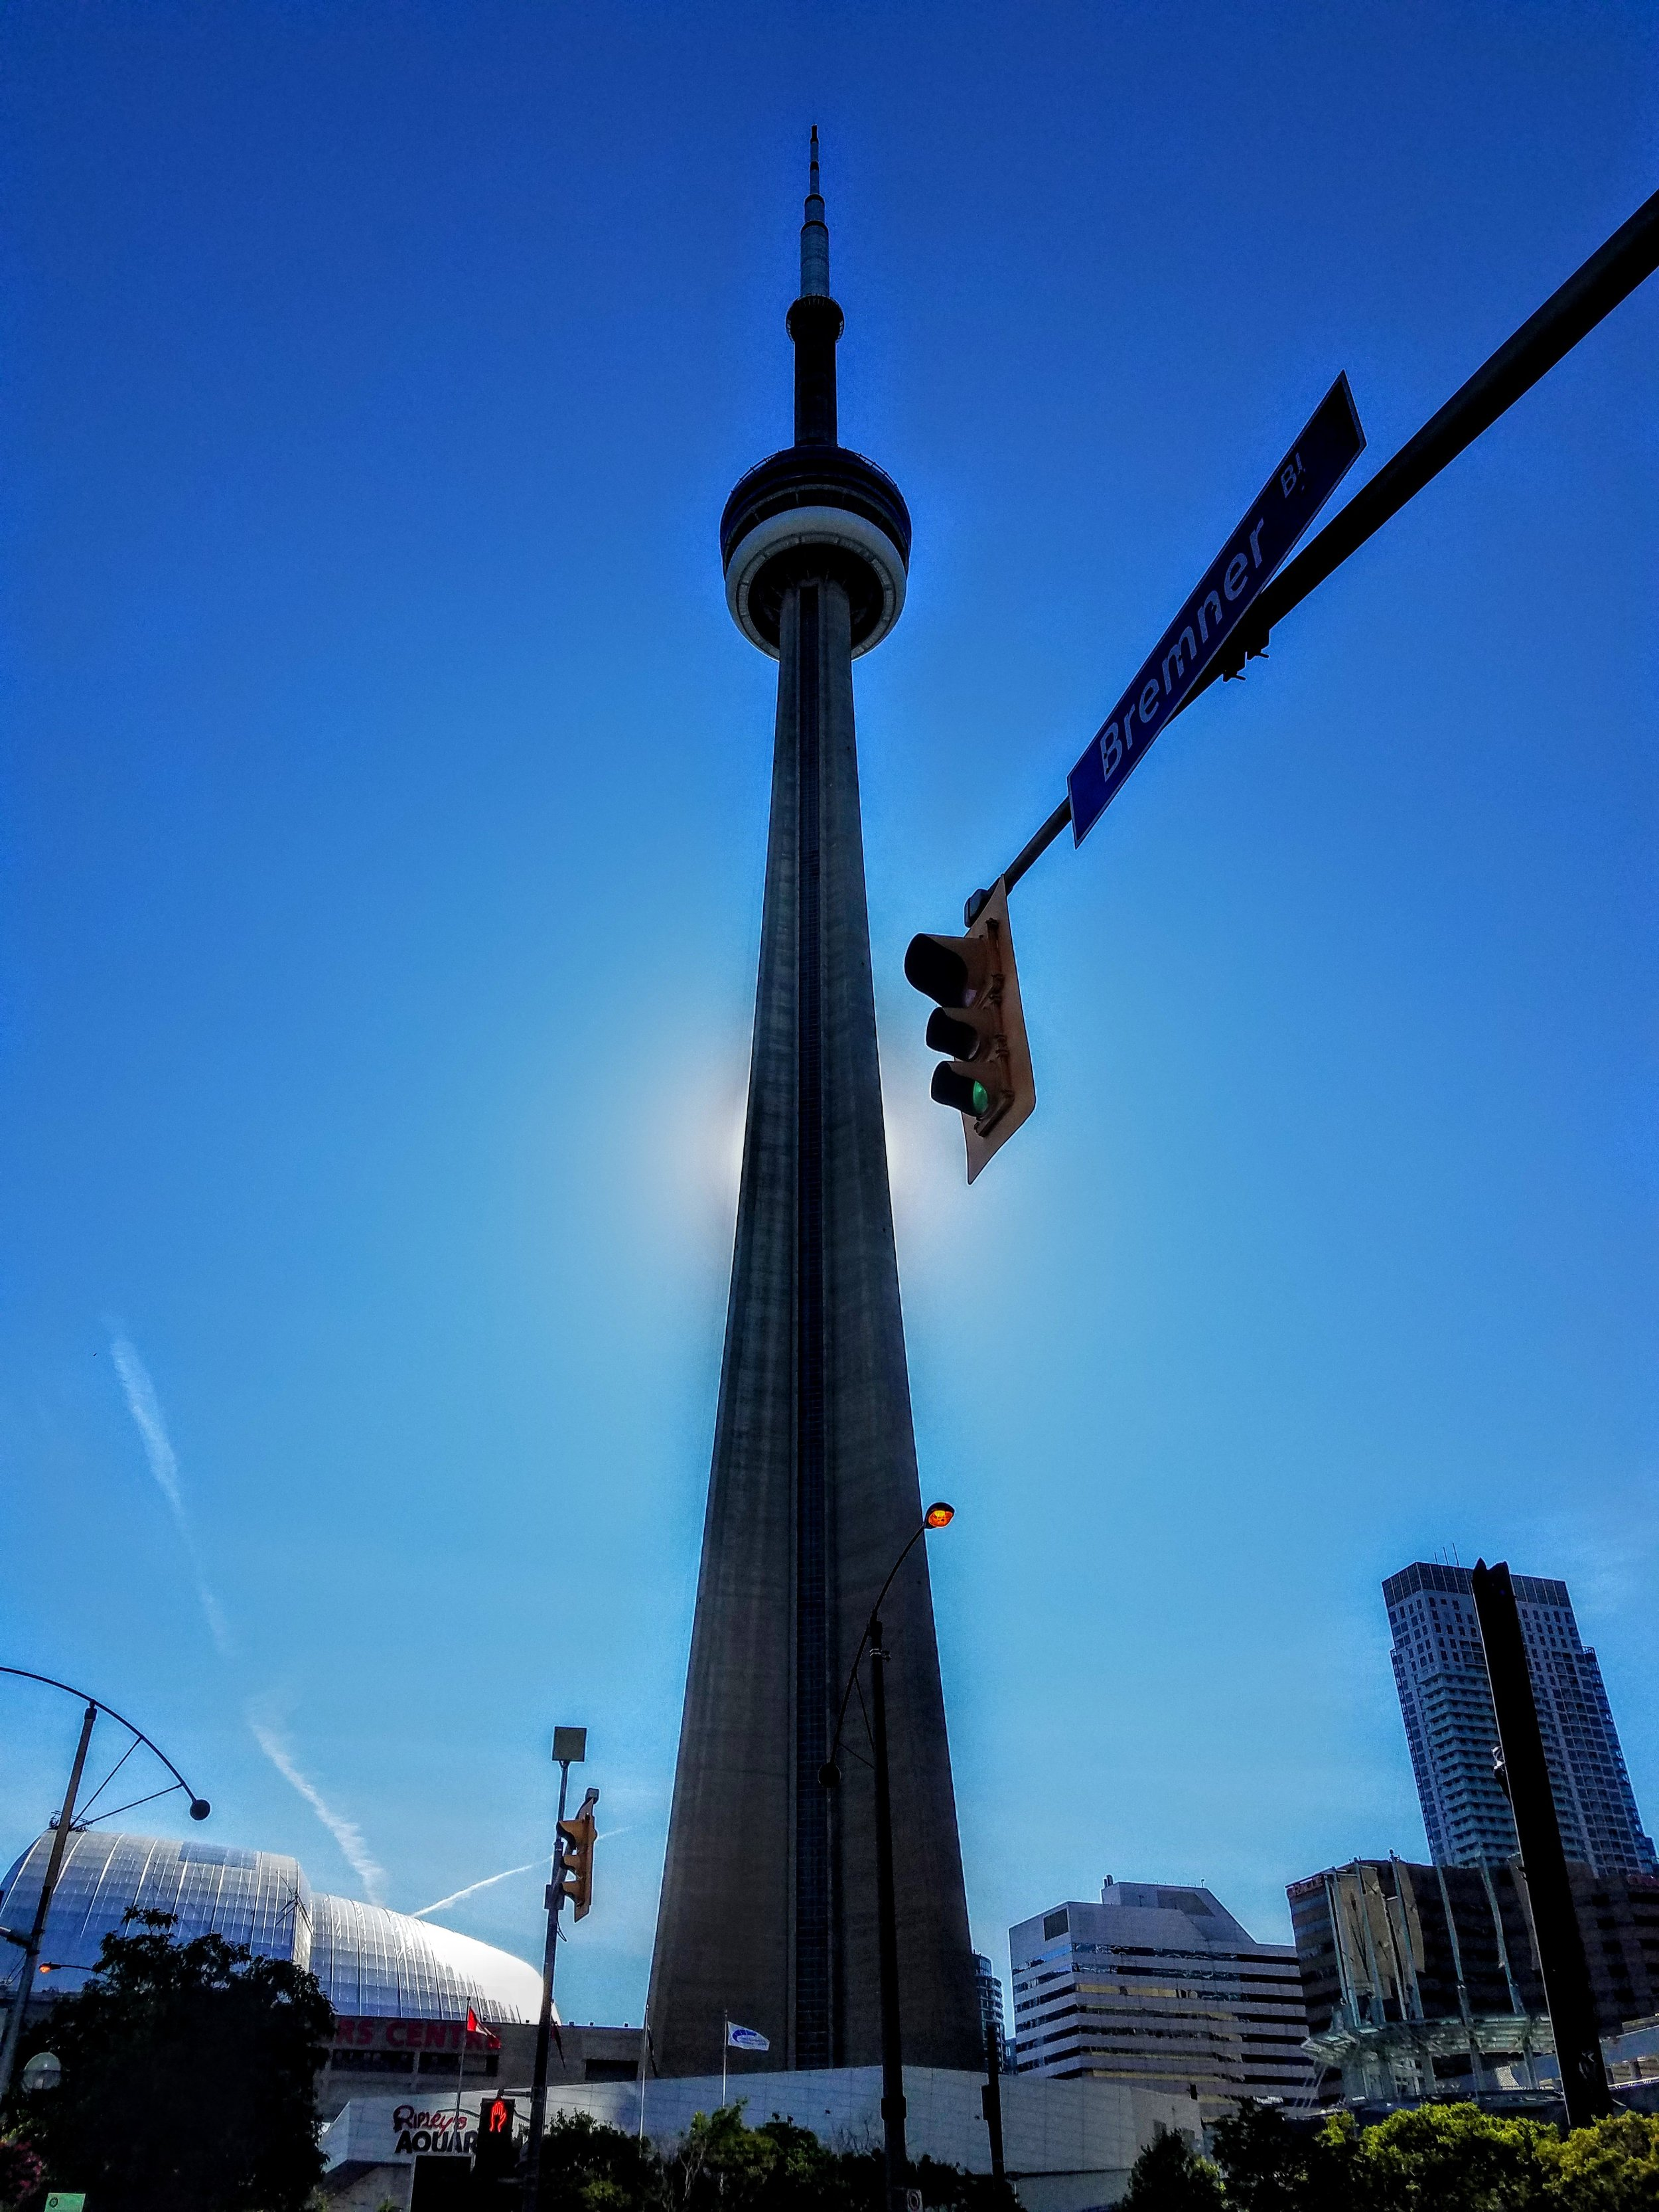 The CN Tower